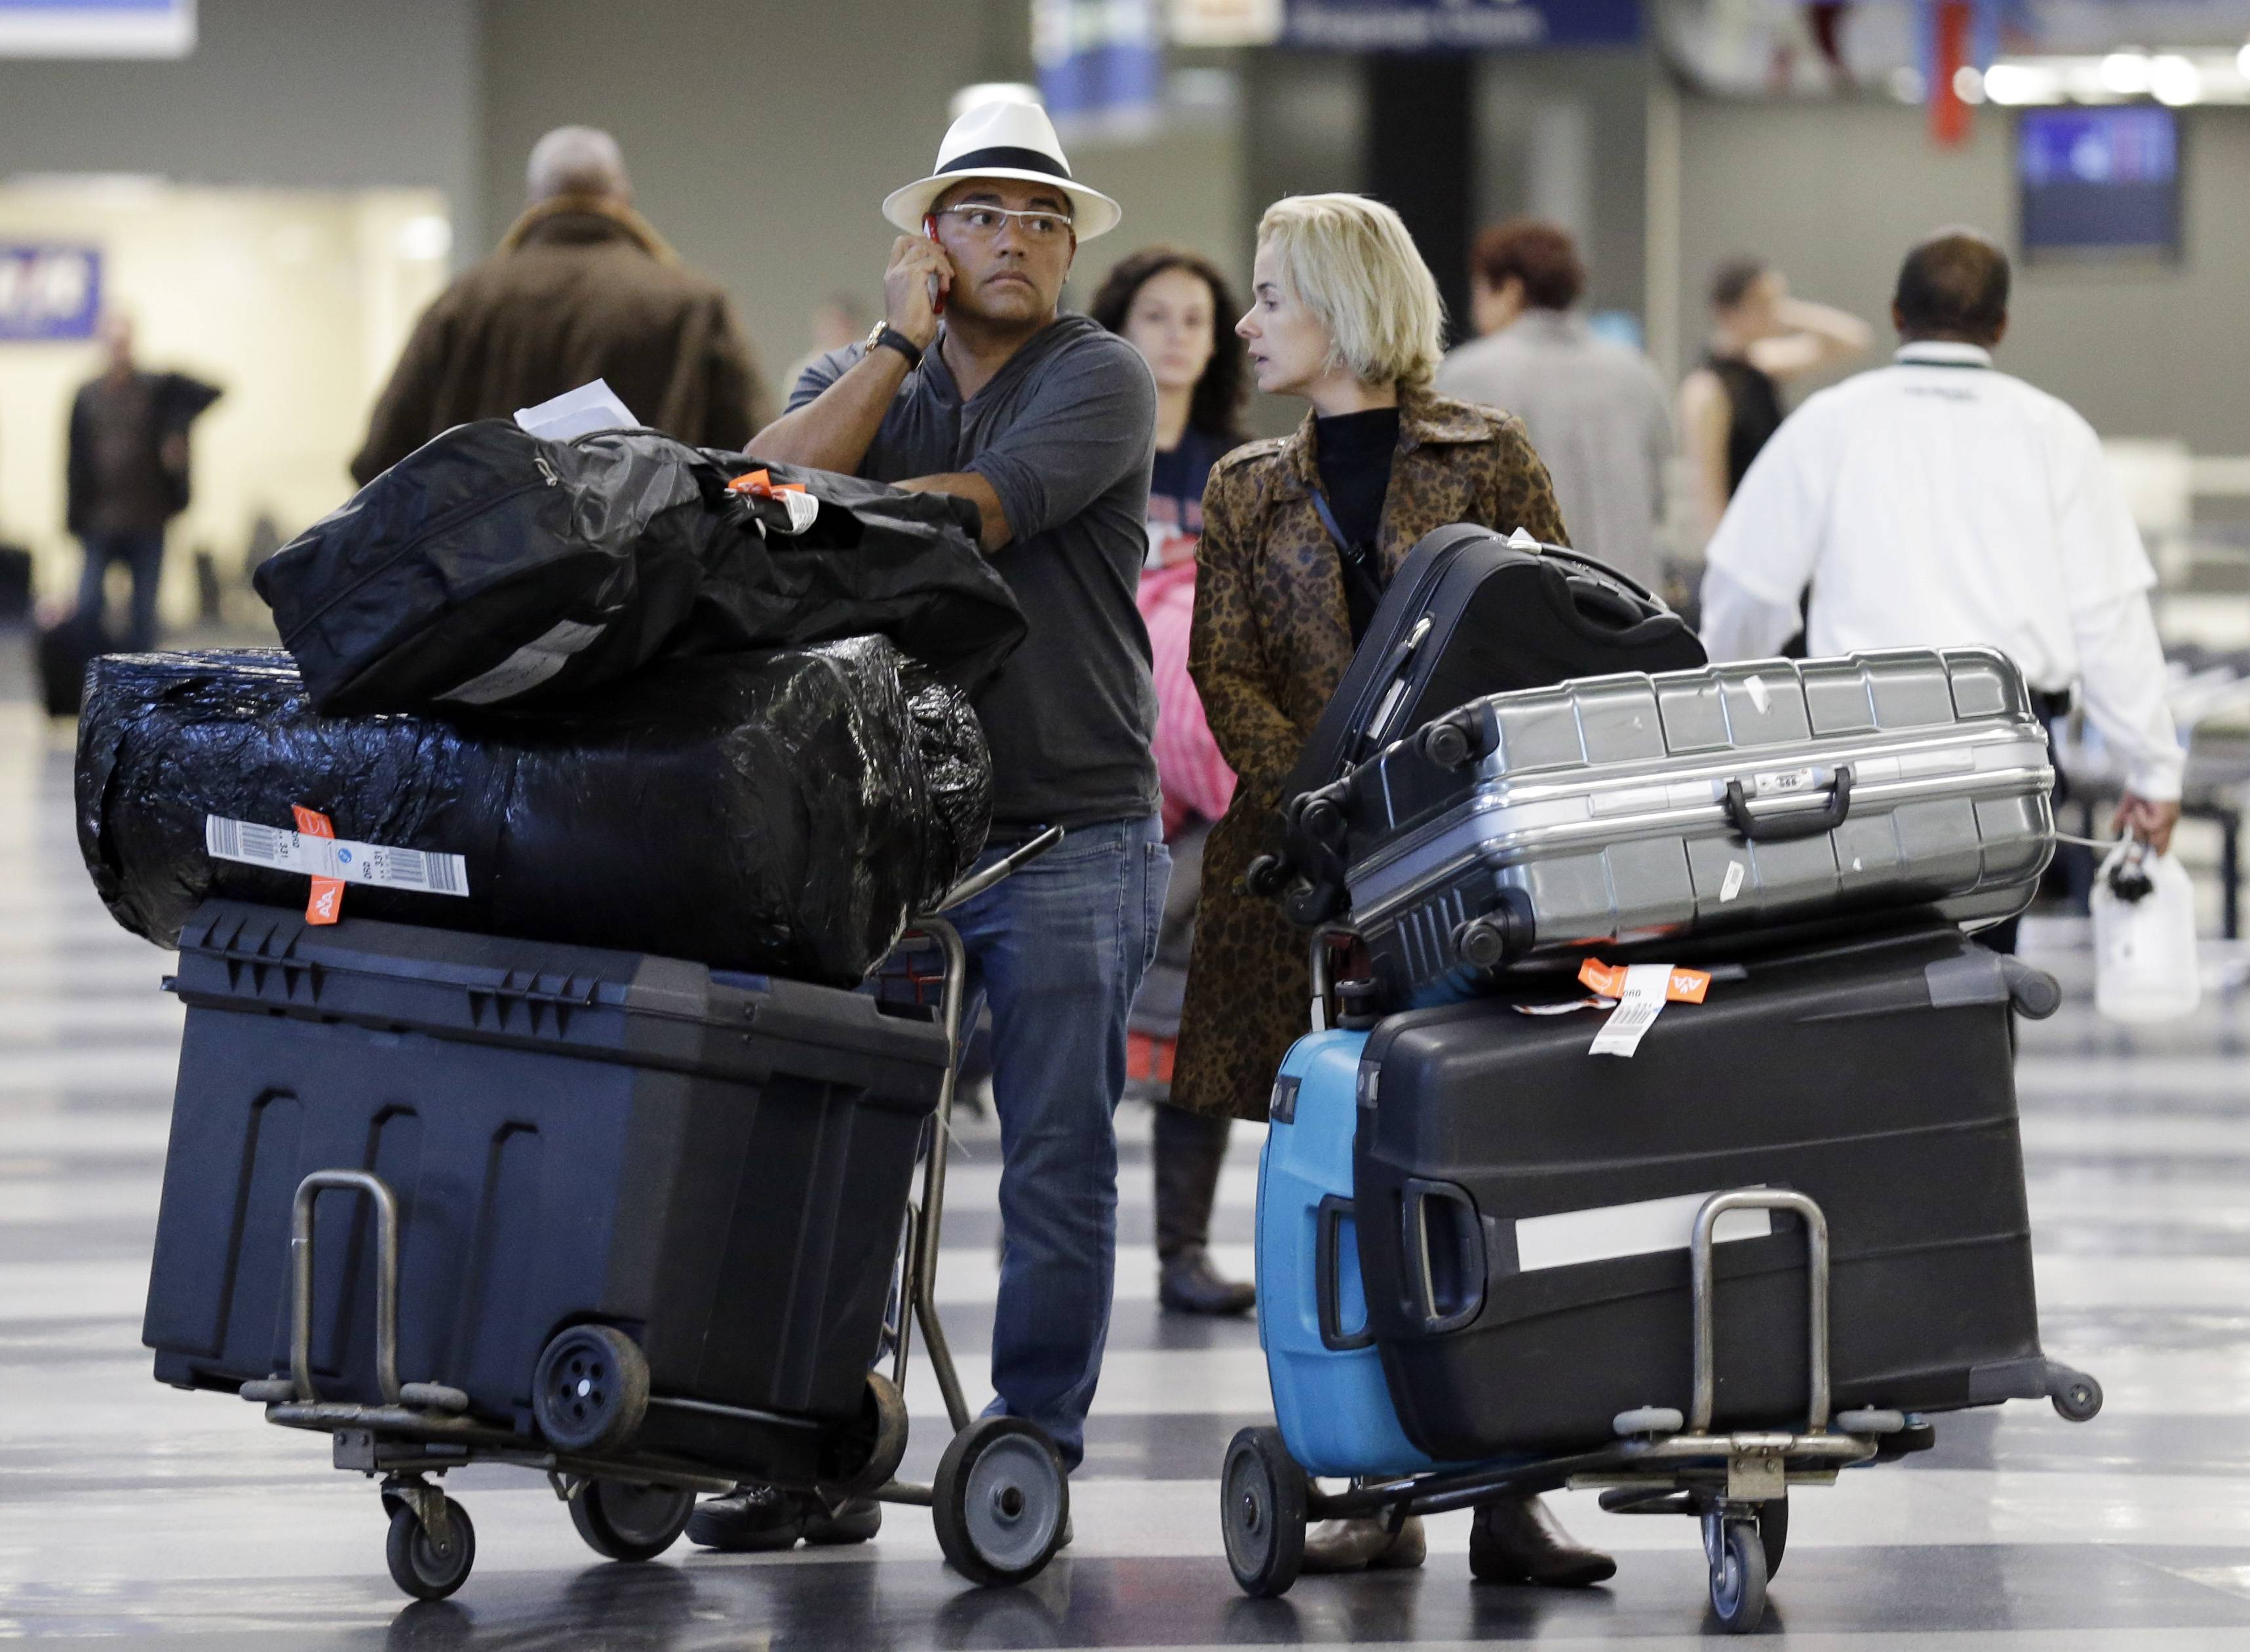 Travelers walk through terminal 3 baggage claim at O'Hare International airport in Chicago. U.S. airlines raised $3.35 billion from bag fees in 2013, down 4 percent from 2012. That's the biggest decline since fees to check a bag or two took off in 2008.